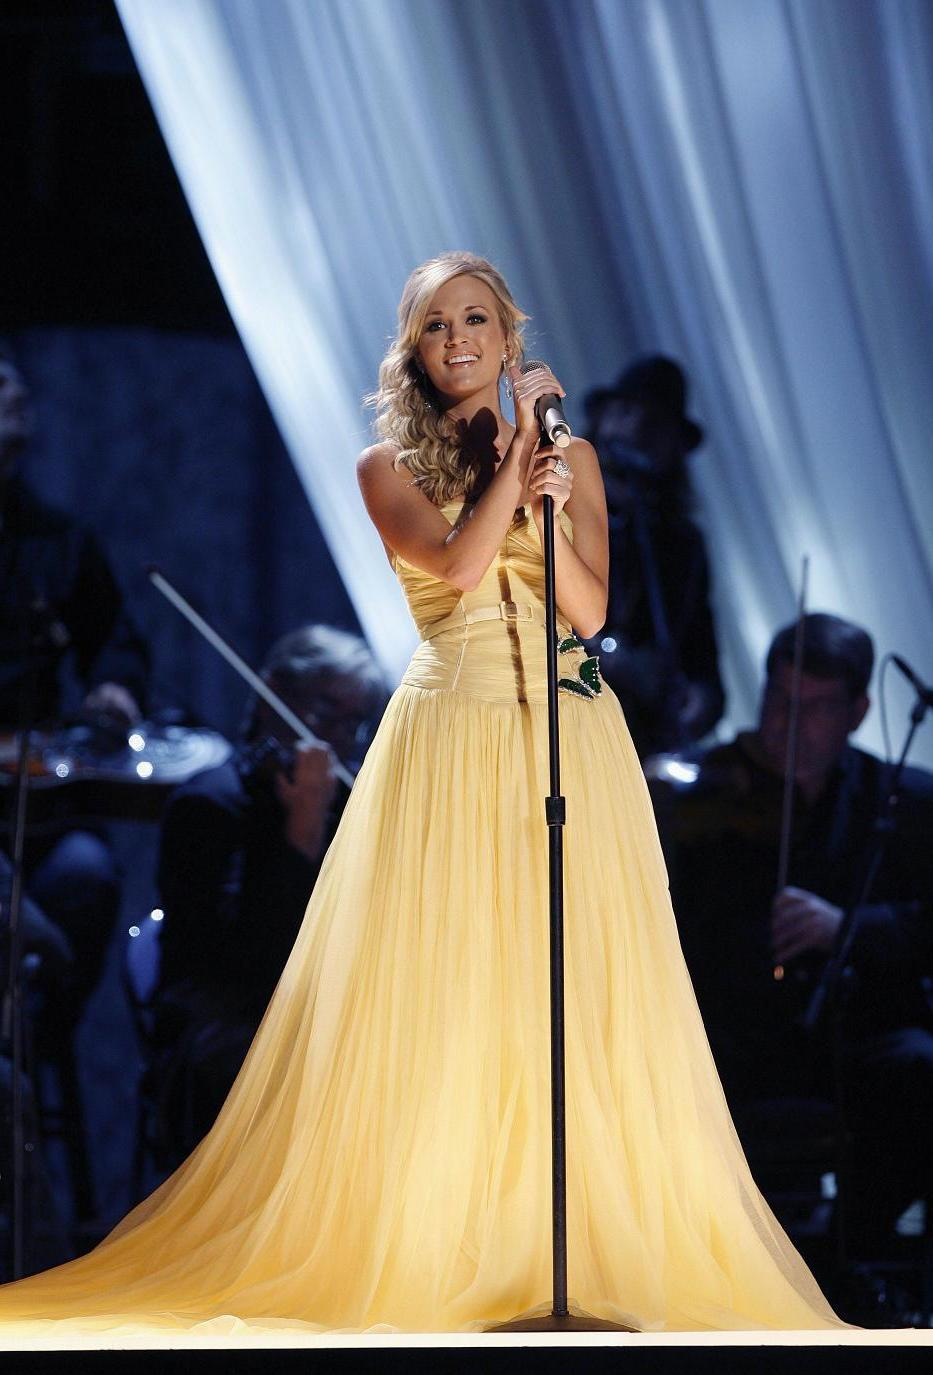 Carrie Underwood, has